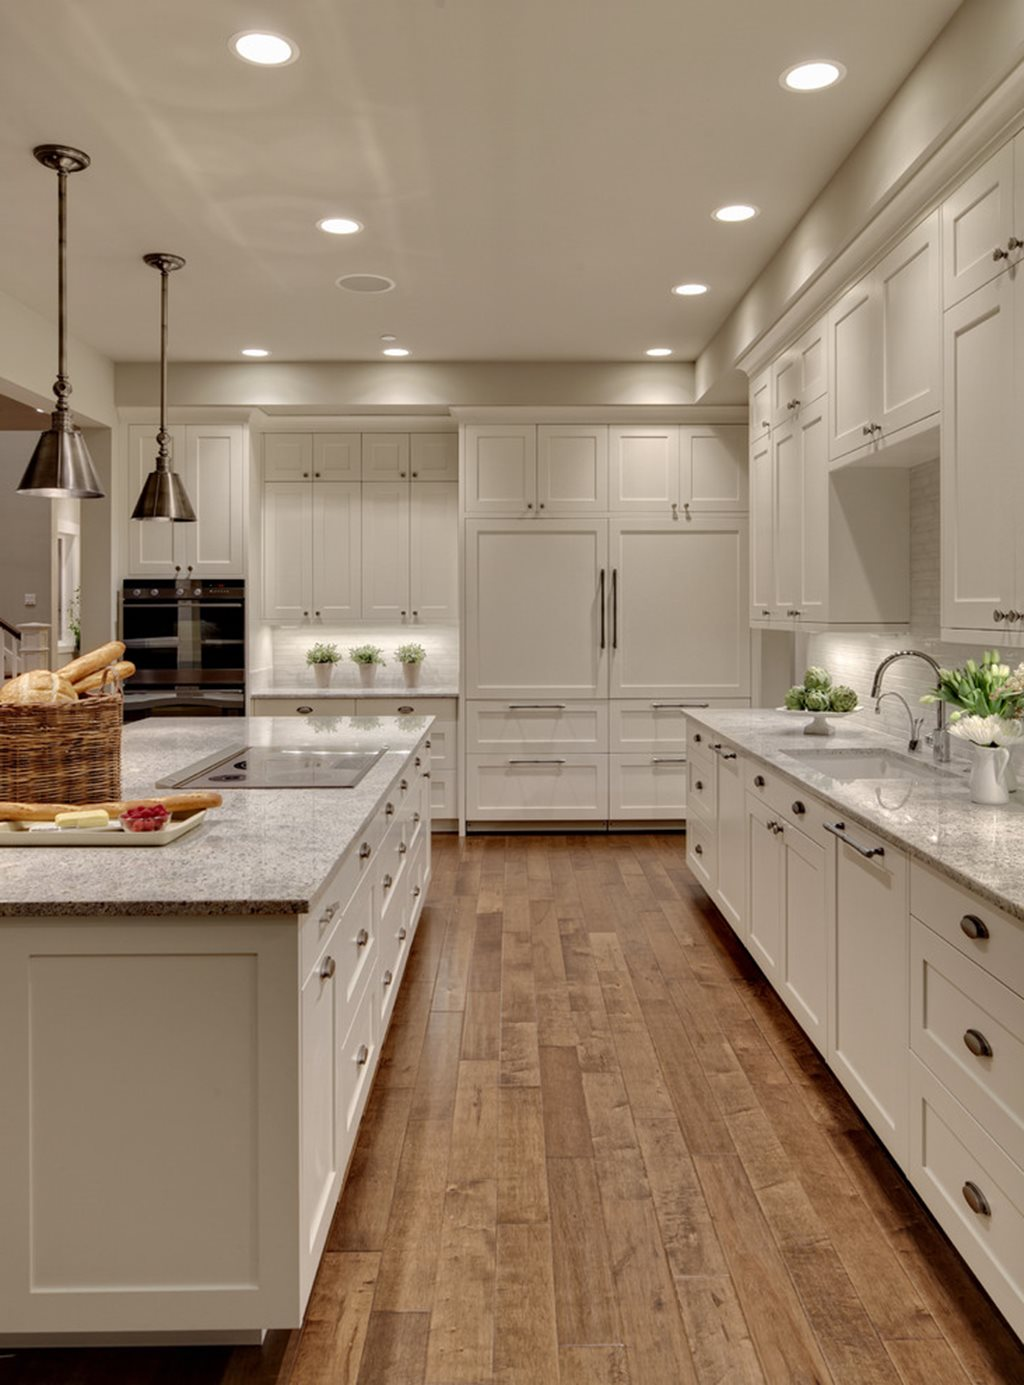 Most Durable Kitchen Flooring What Is The Most Durable Hardwood Flooring All About Flooring